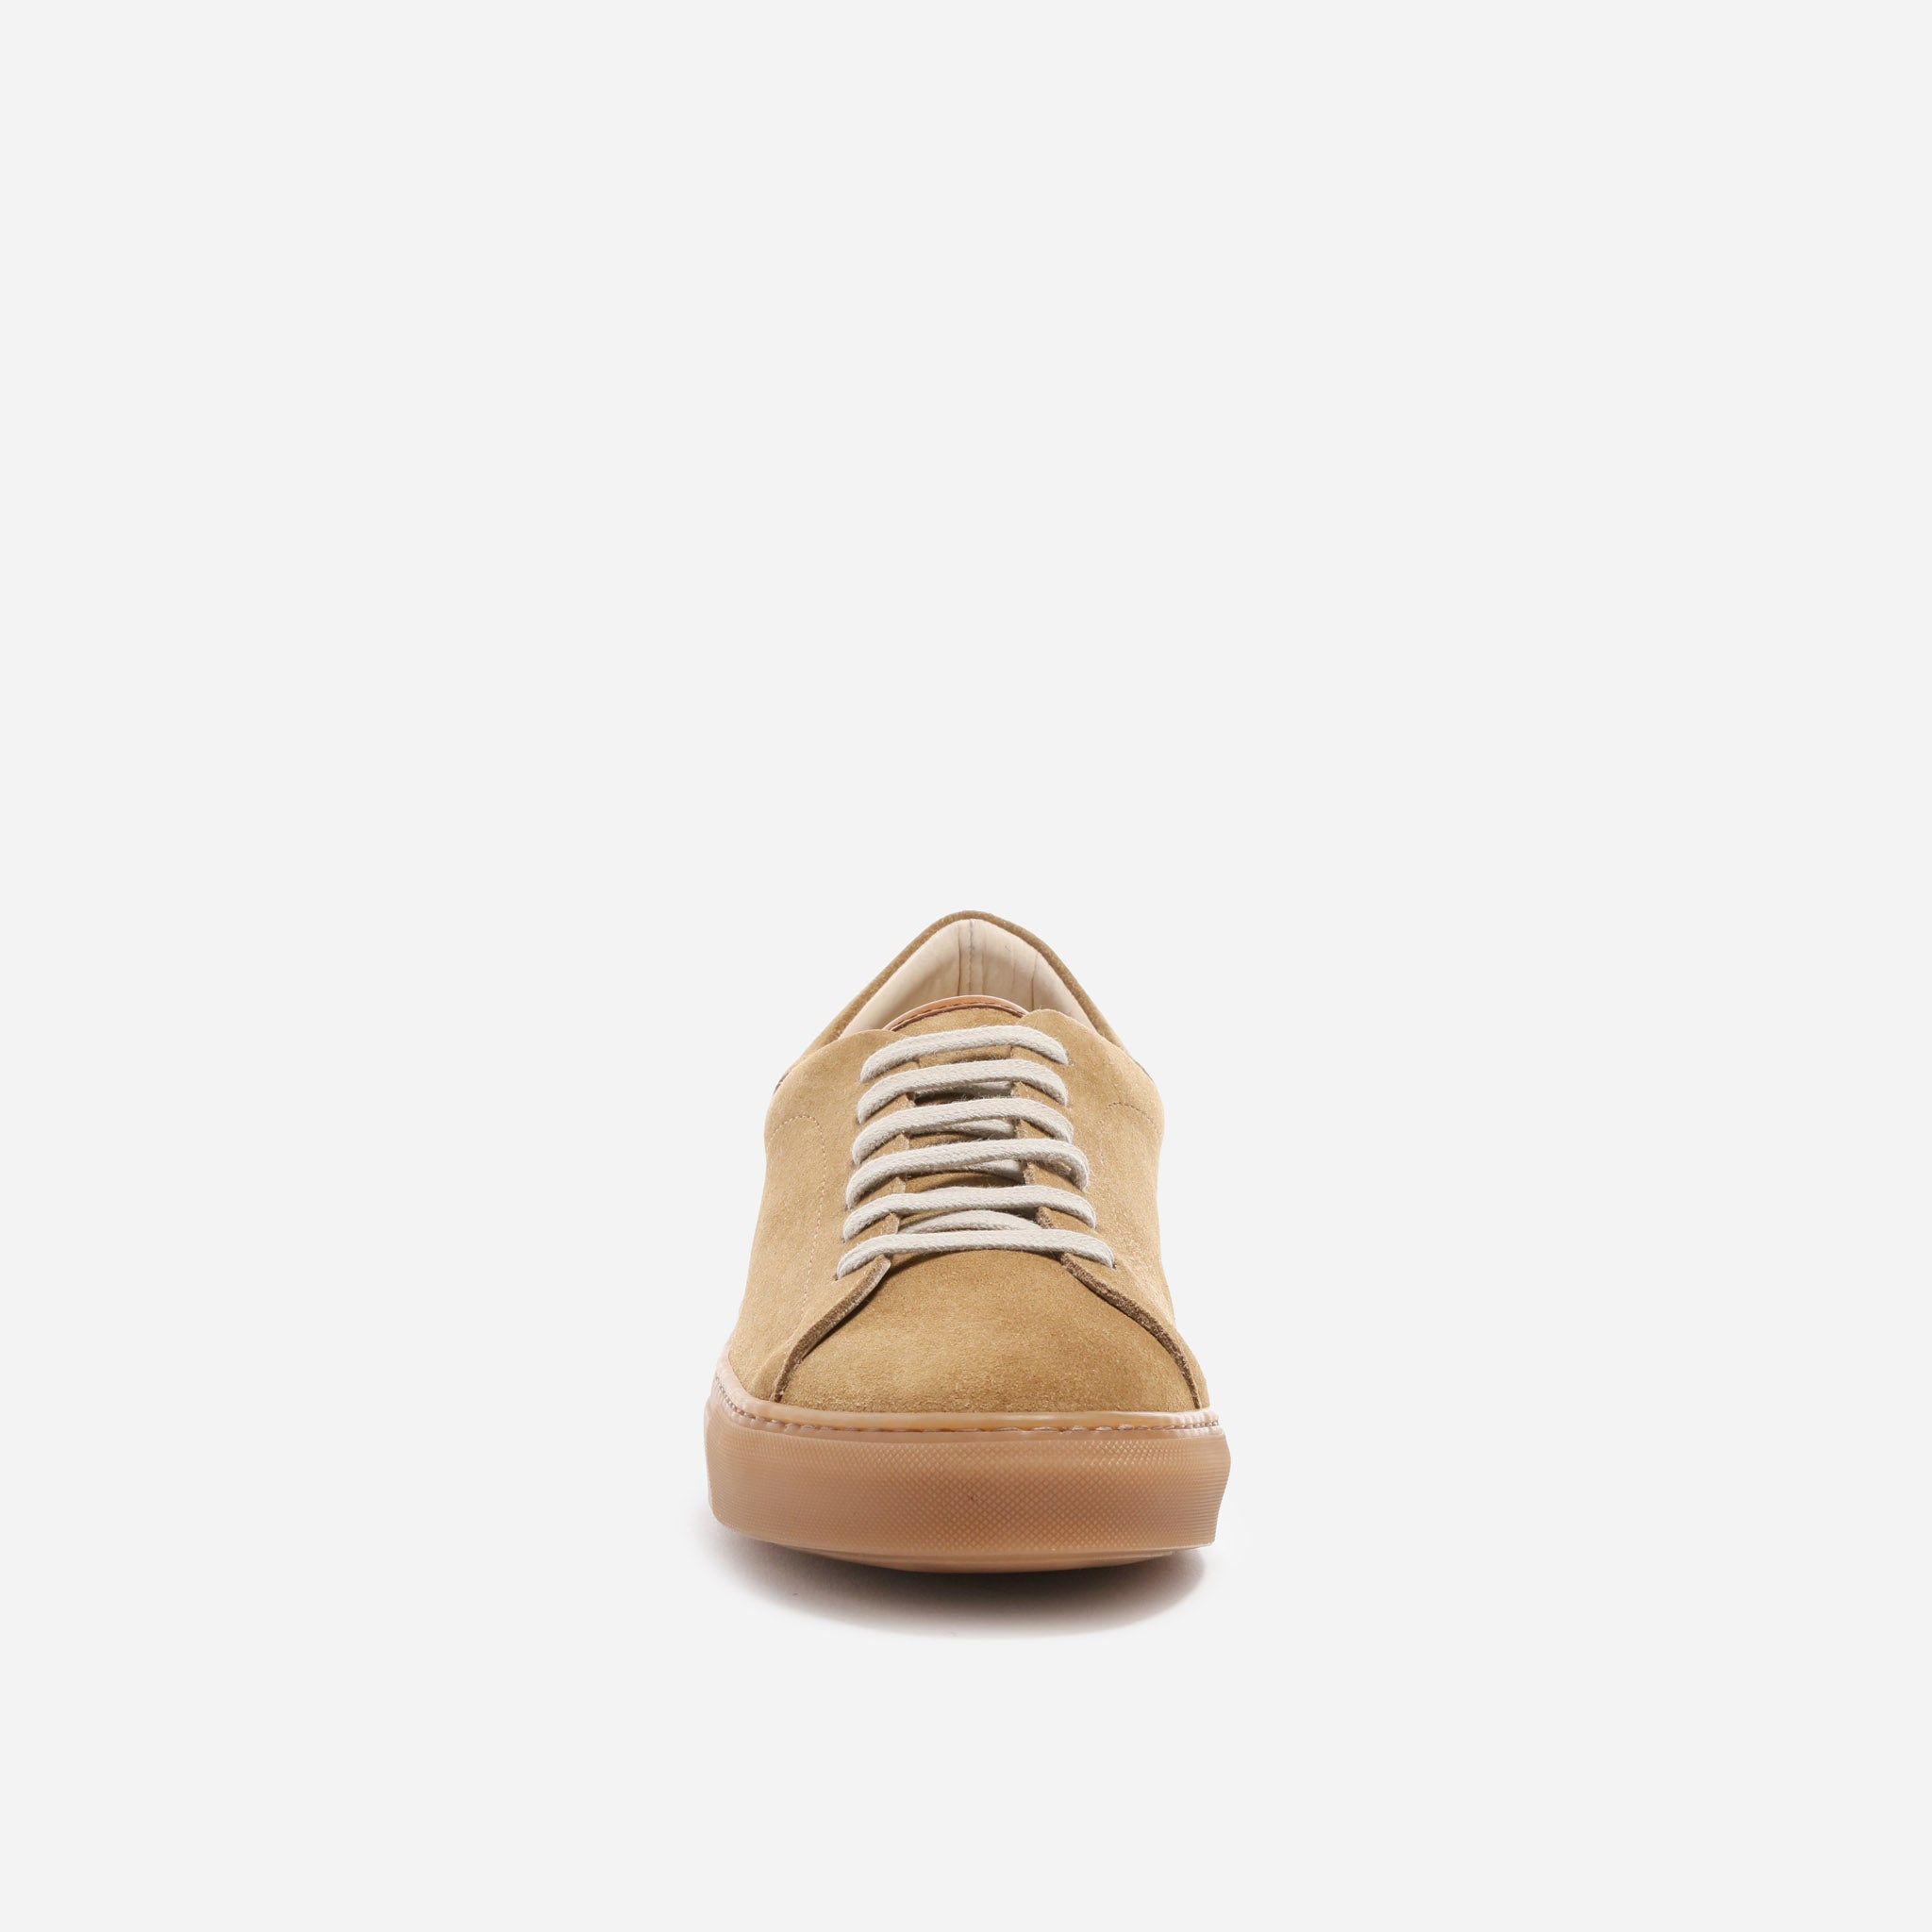 Andy in Tan Suede